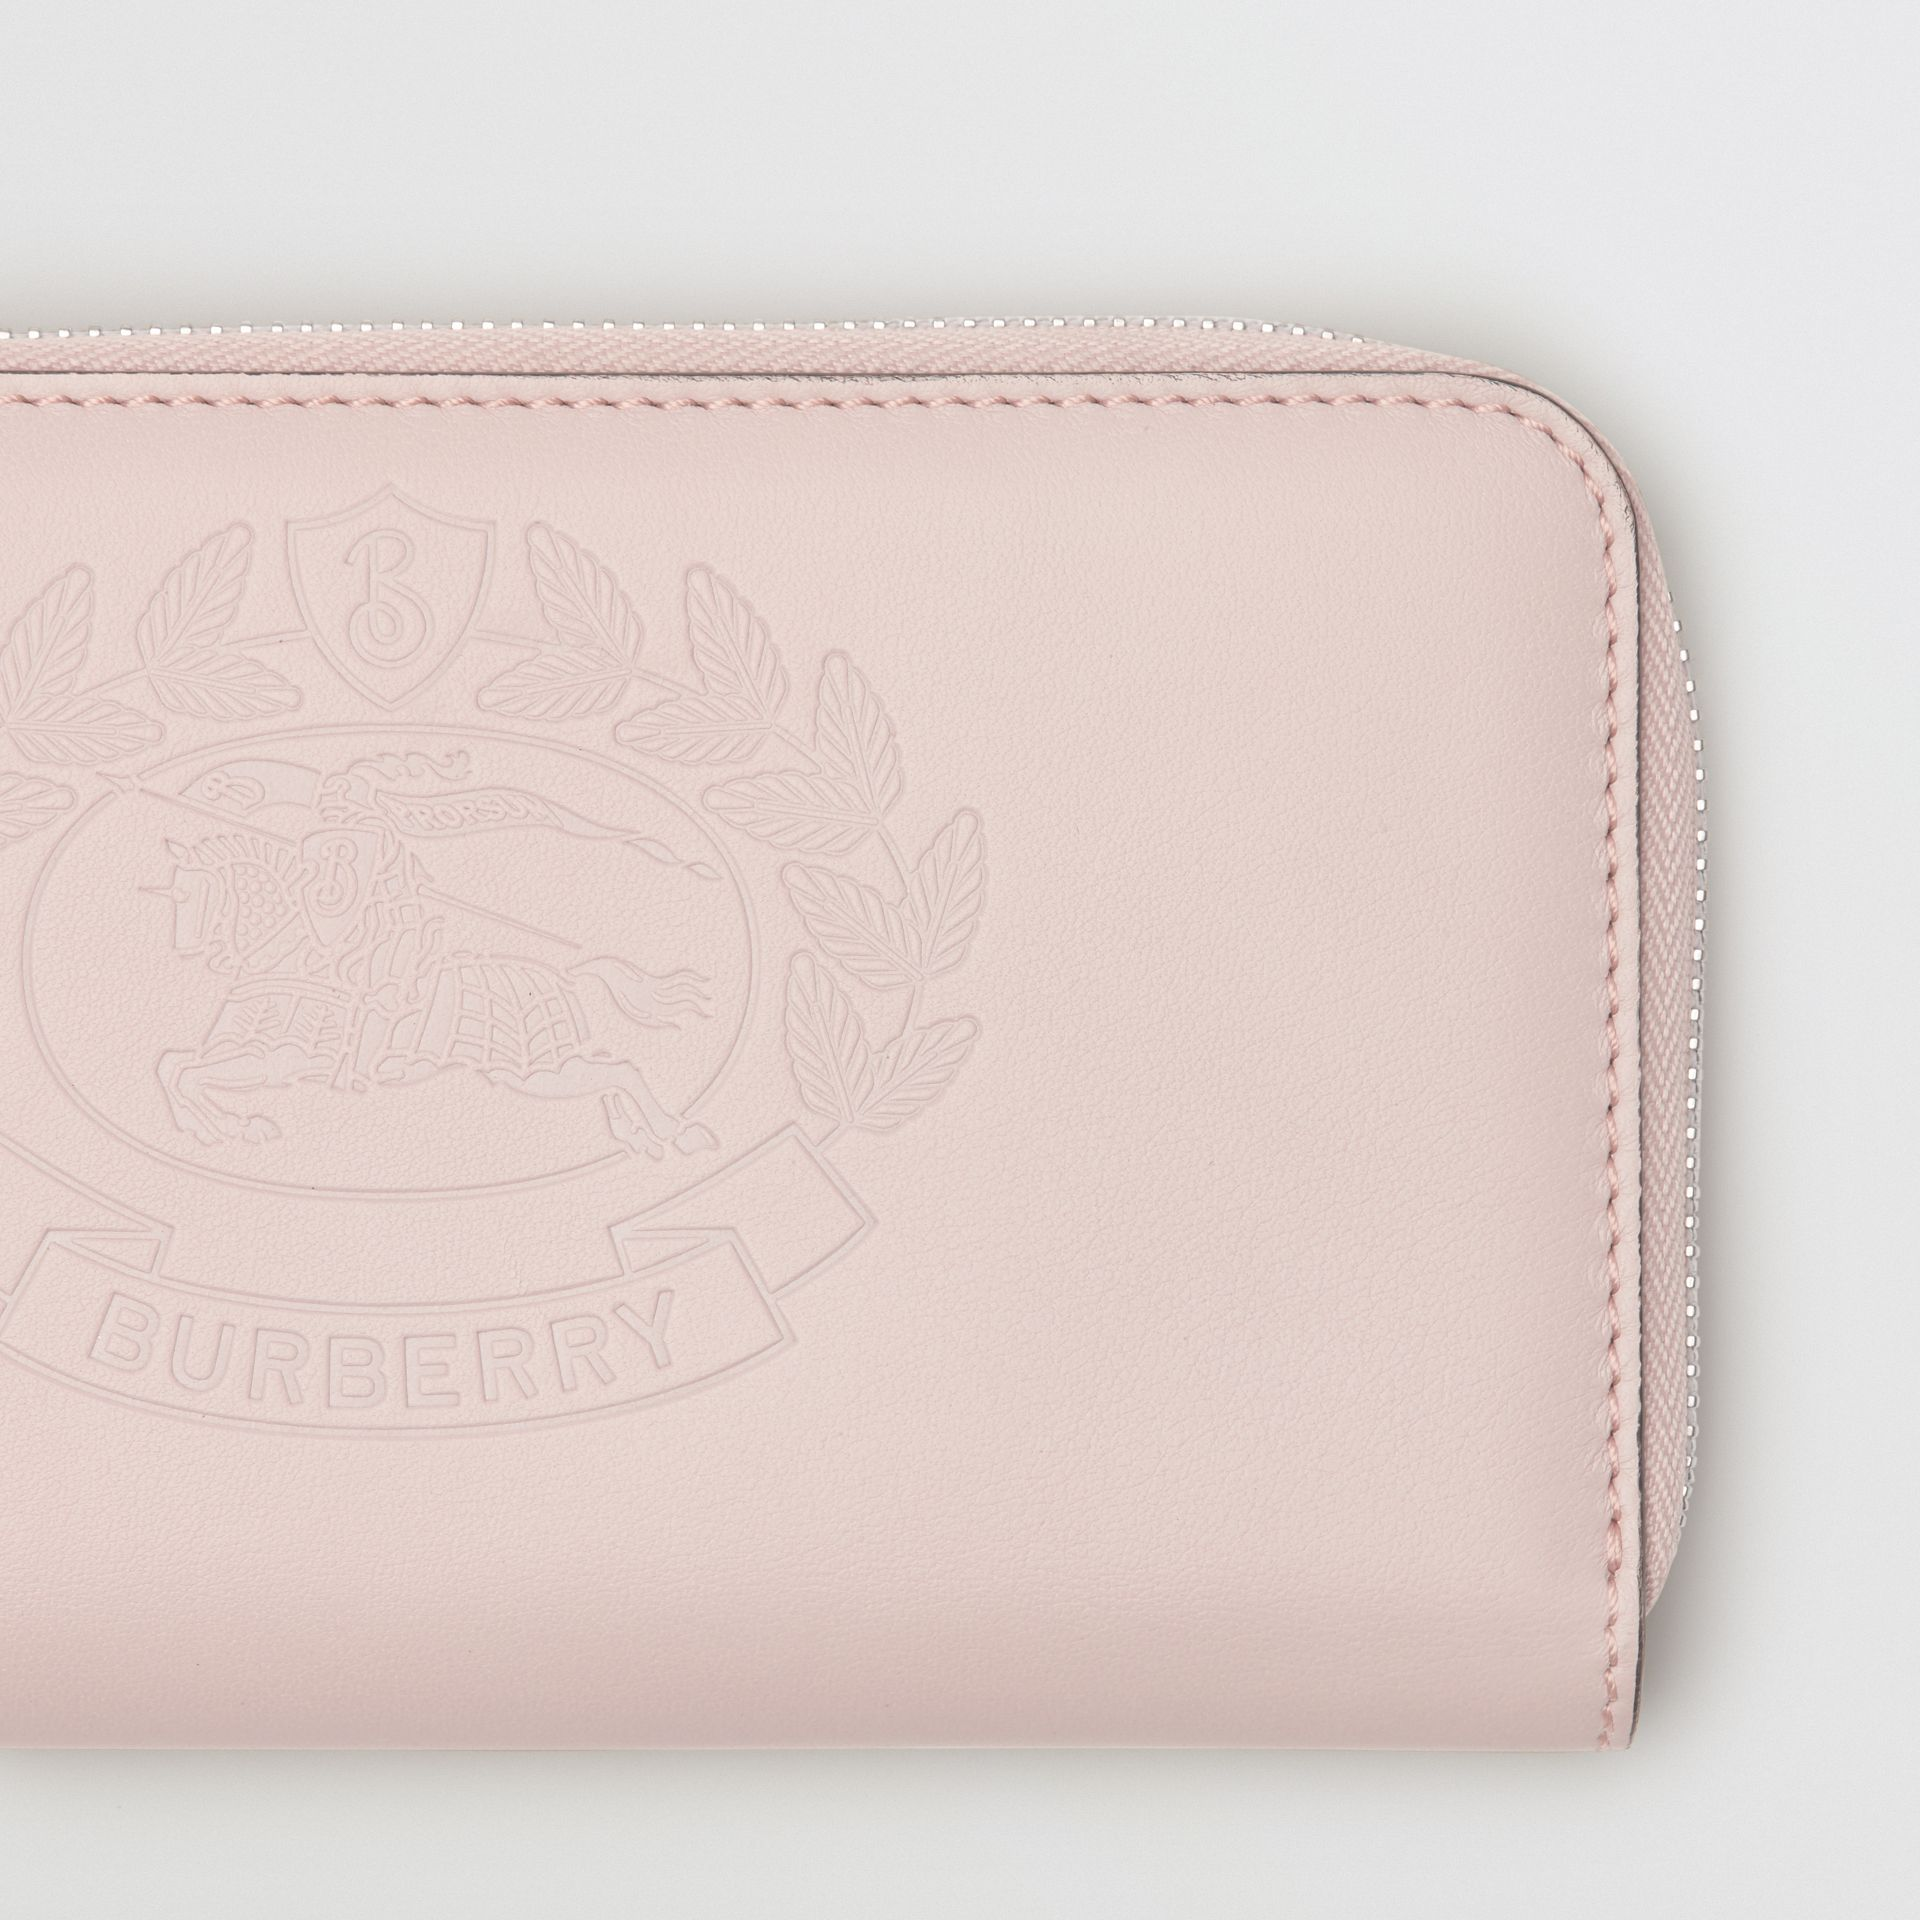 Embossed Crest Two-tone Leather Ziparound Wallet in Chalk Pink - Women | Burberry United States - gallery image 1